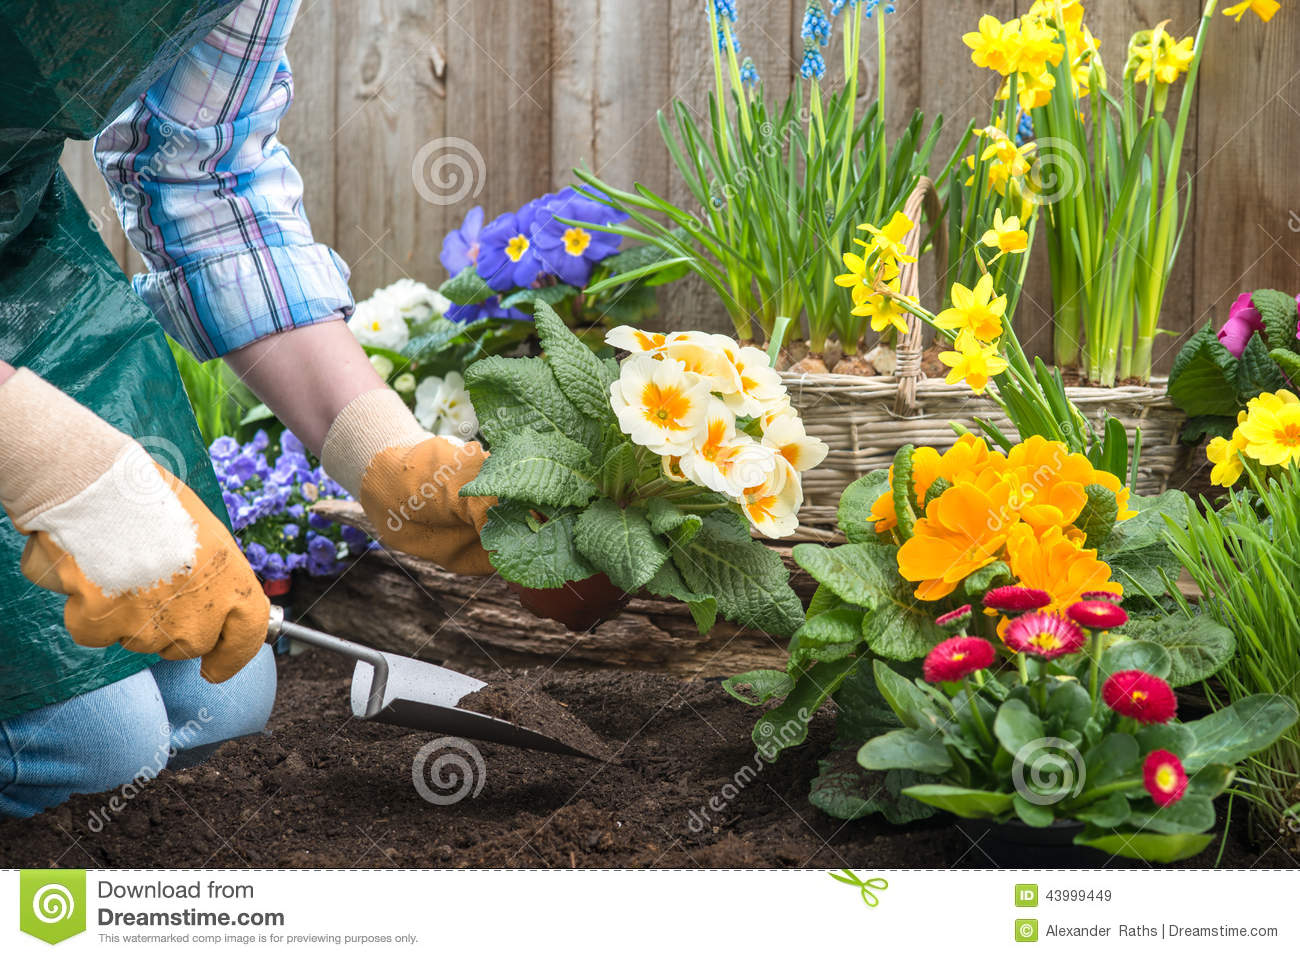 http://thumbs.dreamstime.com/z/gardener-planting-flowers-gardeners-hands-pot-dirt-soil-back-yard-43999449.jpg